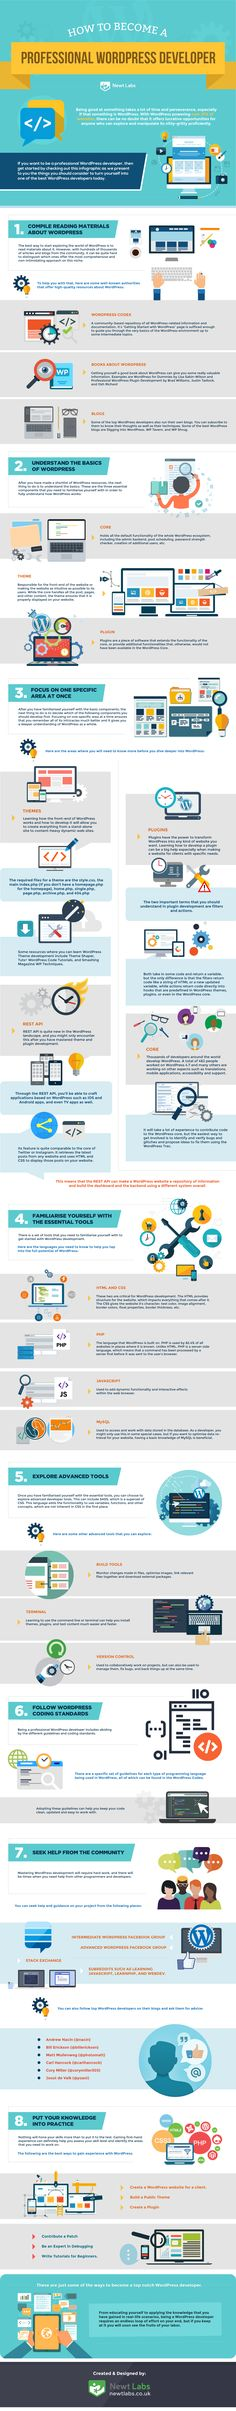 How to Become a Professional WordPress Developer - #Infographic